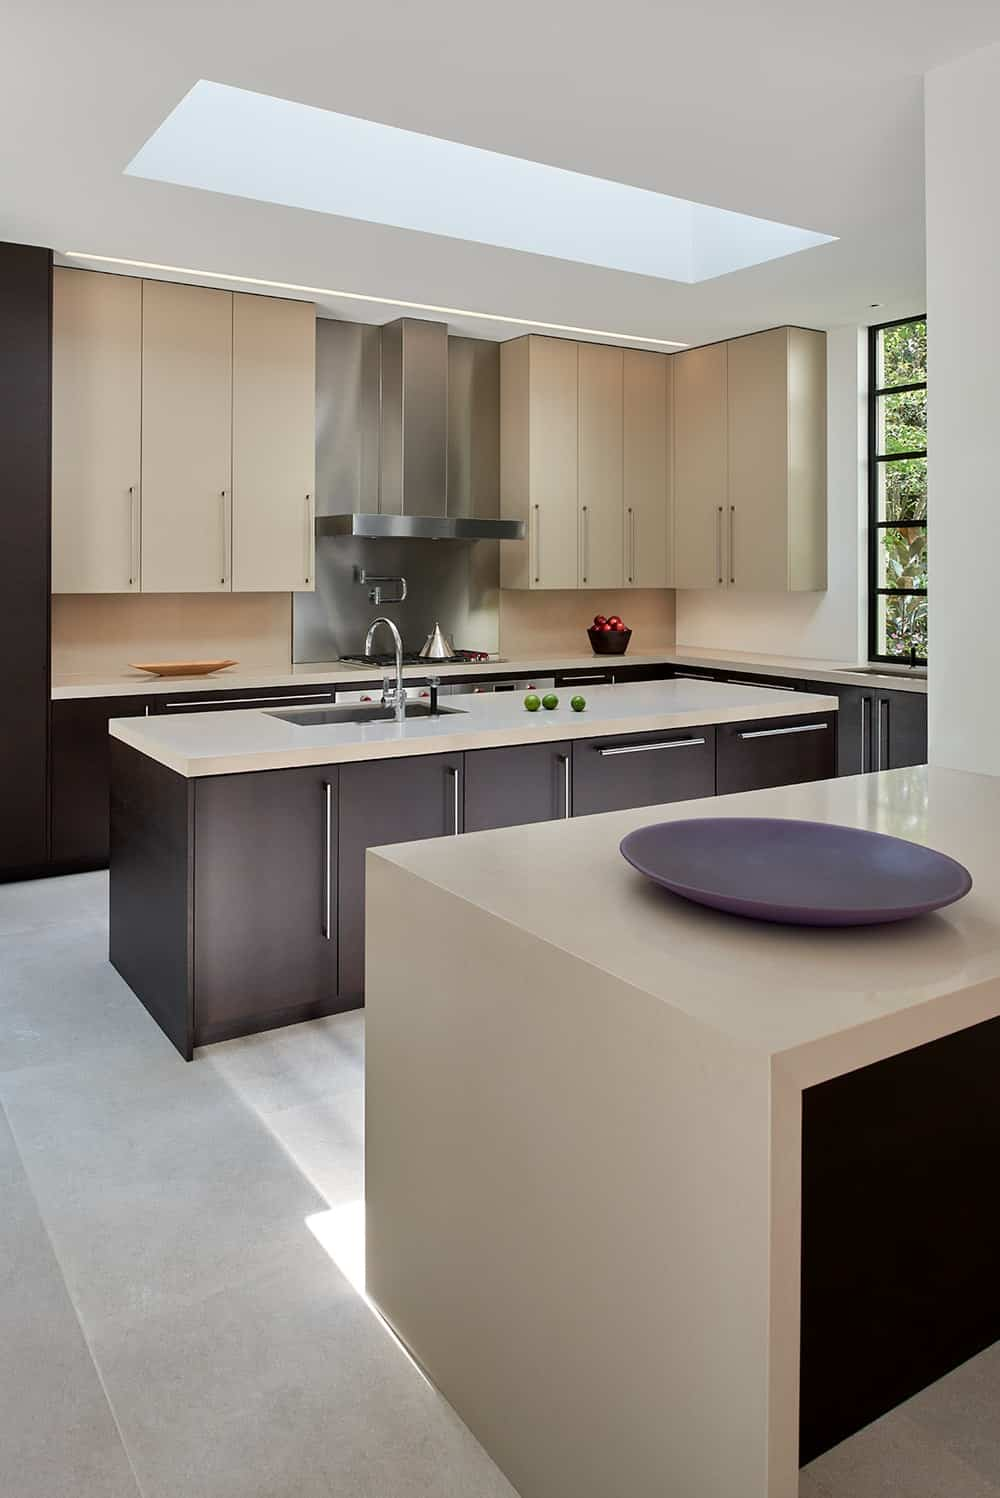 The kitchen has a beige tone to its countertops that match the dark wooden cabinetry contrasted by the bright ceiling and floor.